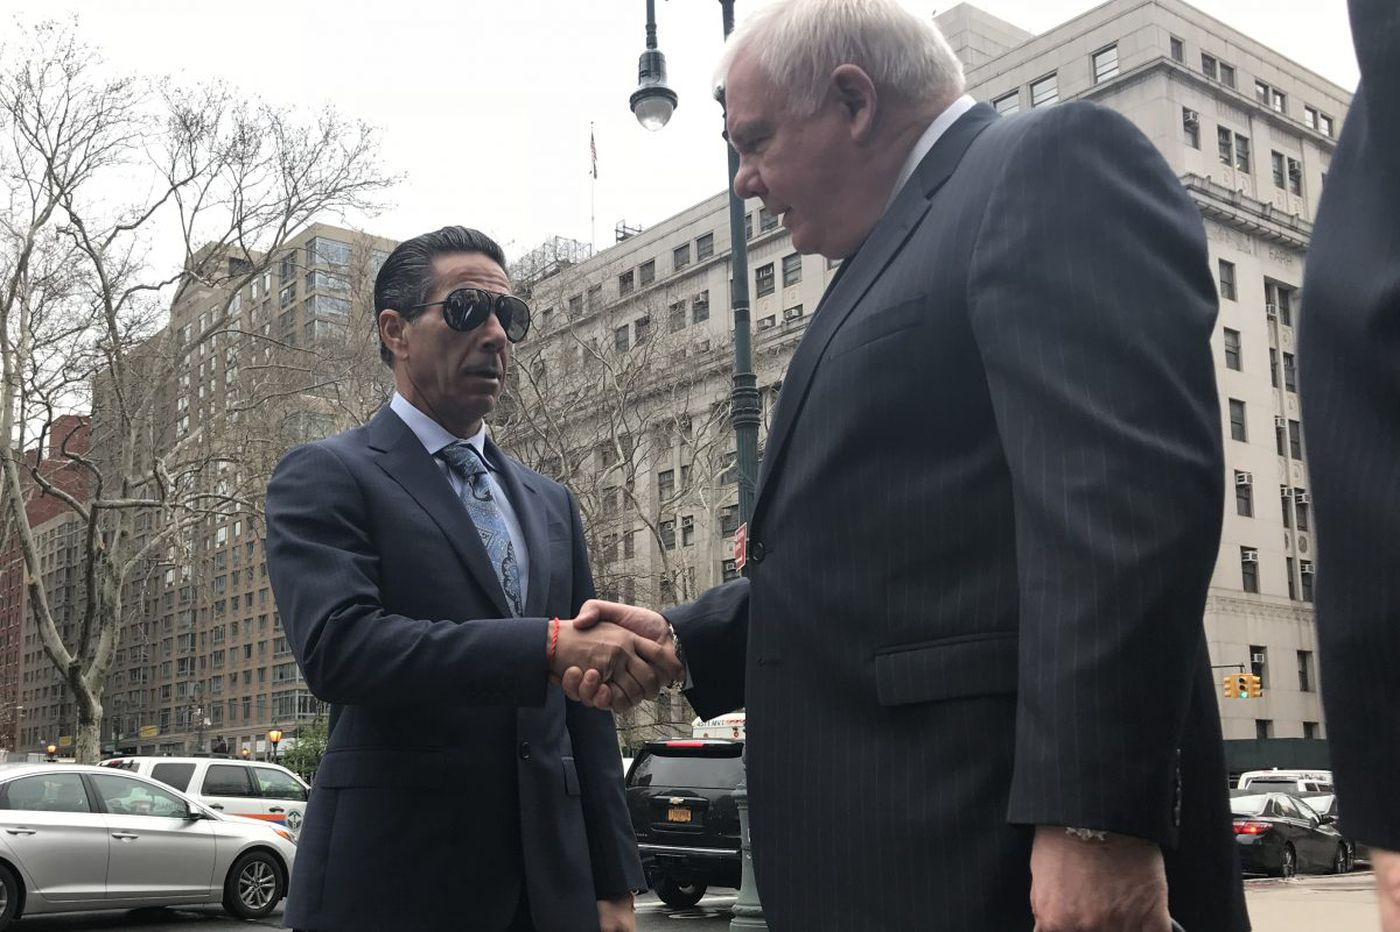 Even for 'Skinny Joey' Merlino, there's always a first time | Stu Bykofsky